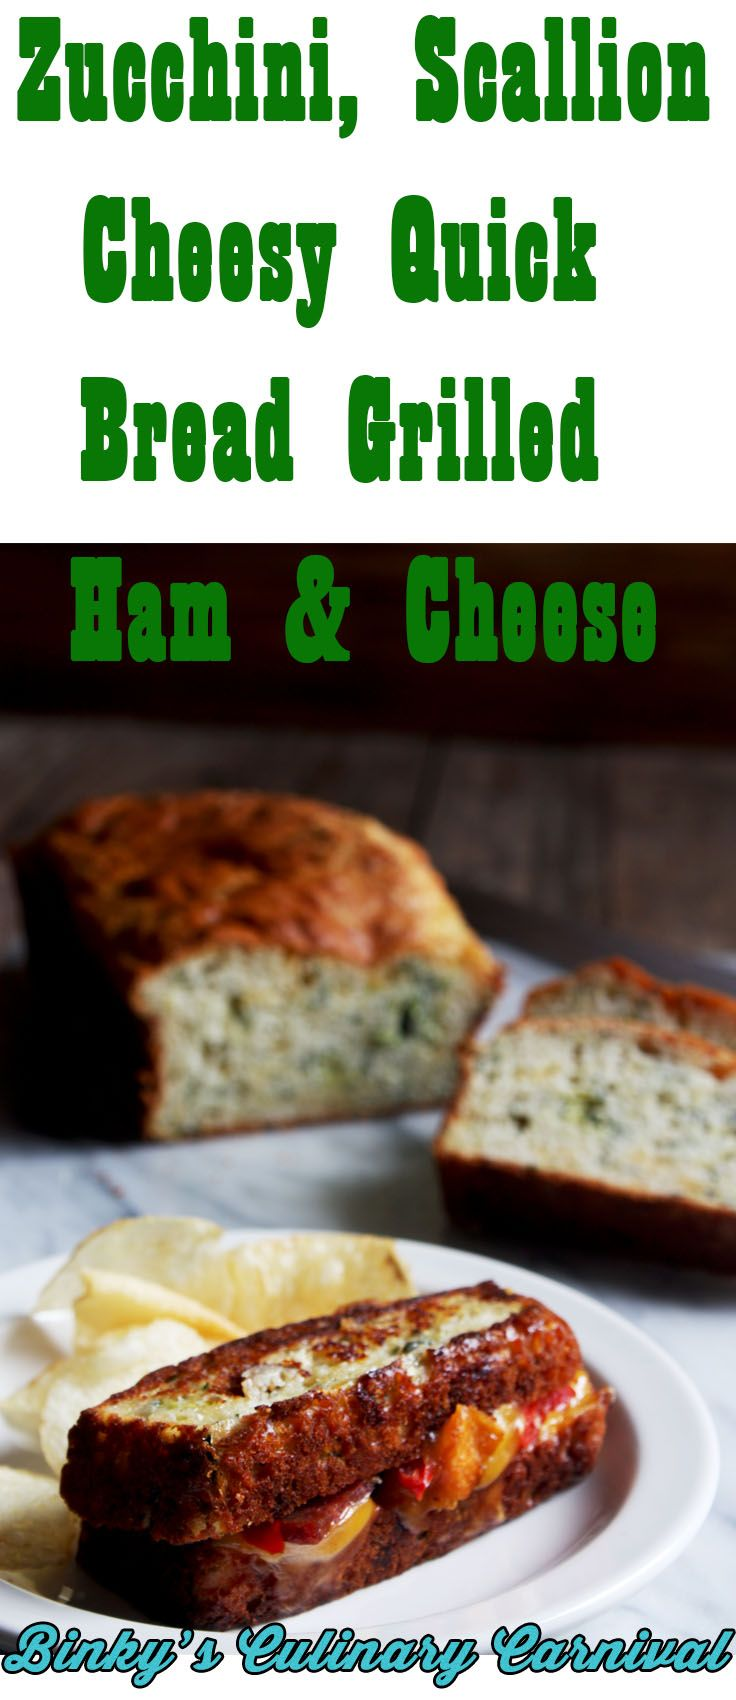 Zucchini, Green Onion Cheesy Quick Bread This Zucchini, Green Onion Cheesy Quick Bread couldn't be any easier! I skipped a step by using Bisquick, (or your favorite... Read more »